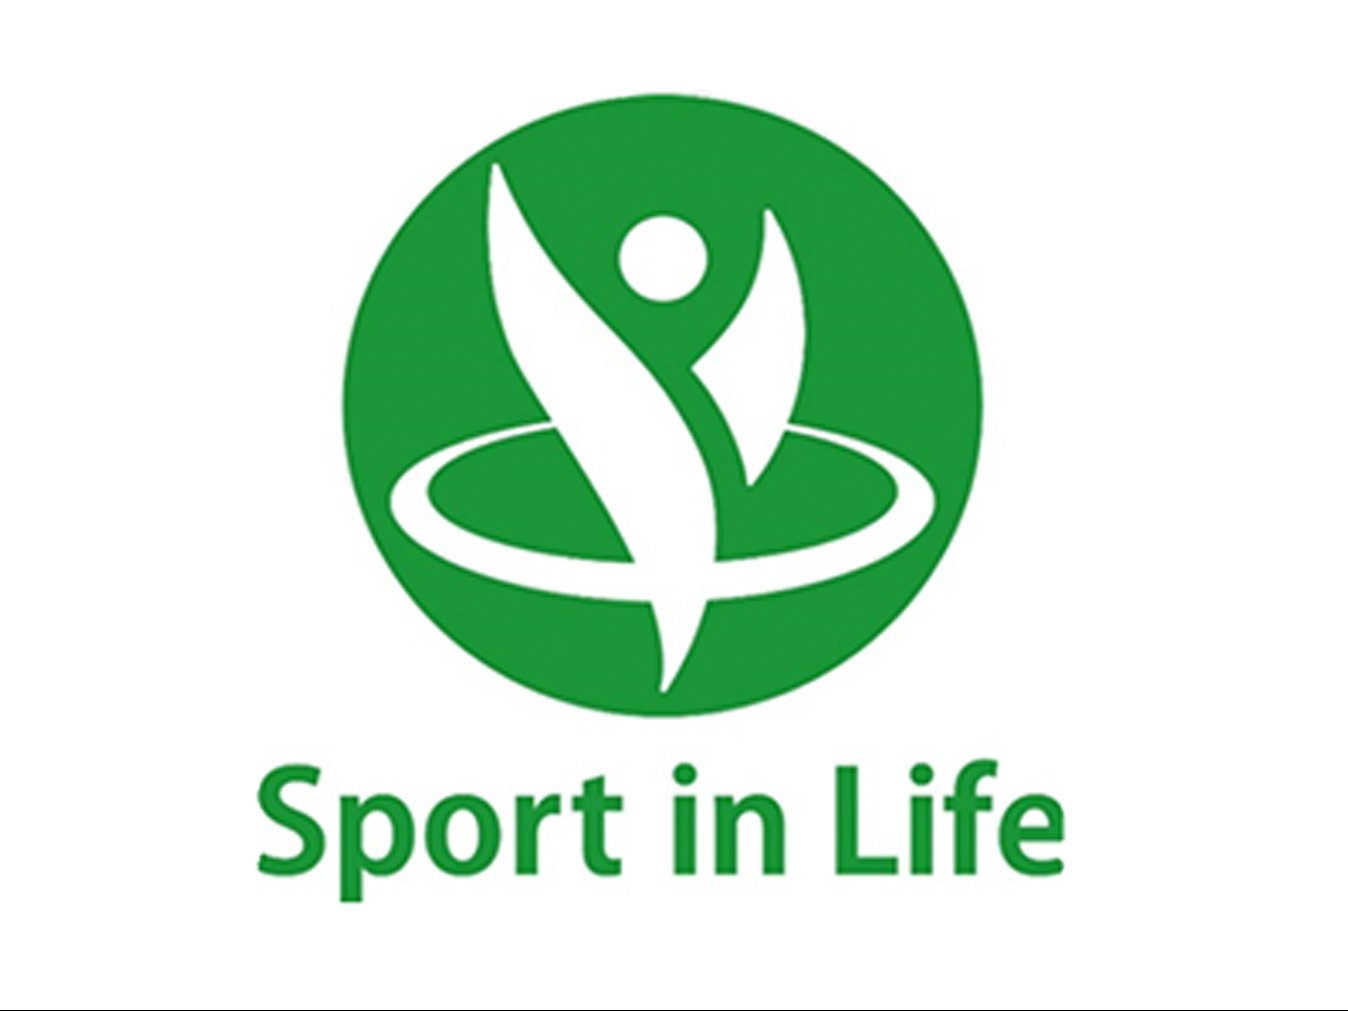 sport in life ロゴ